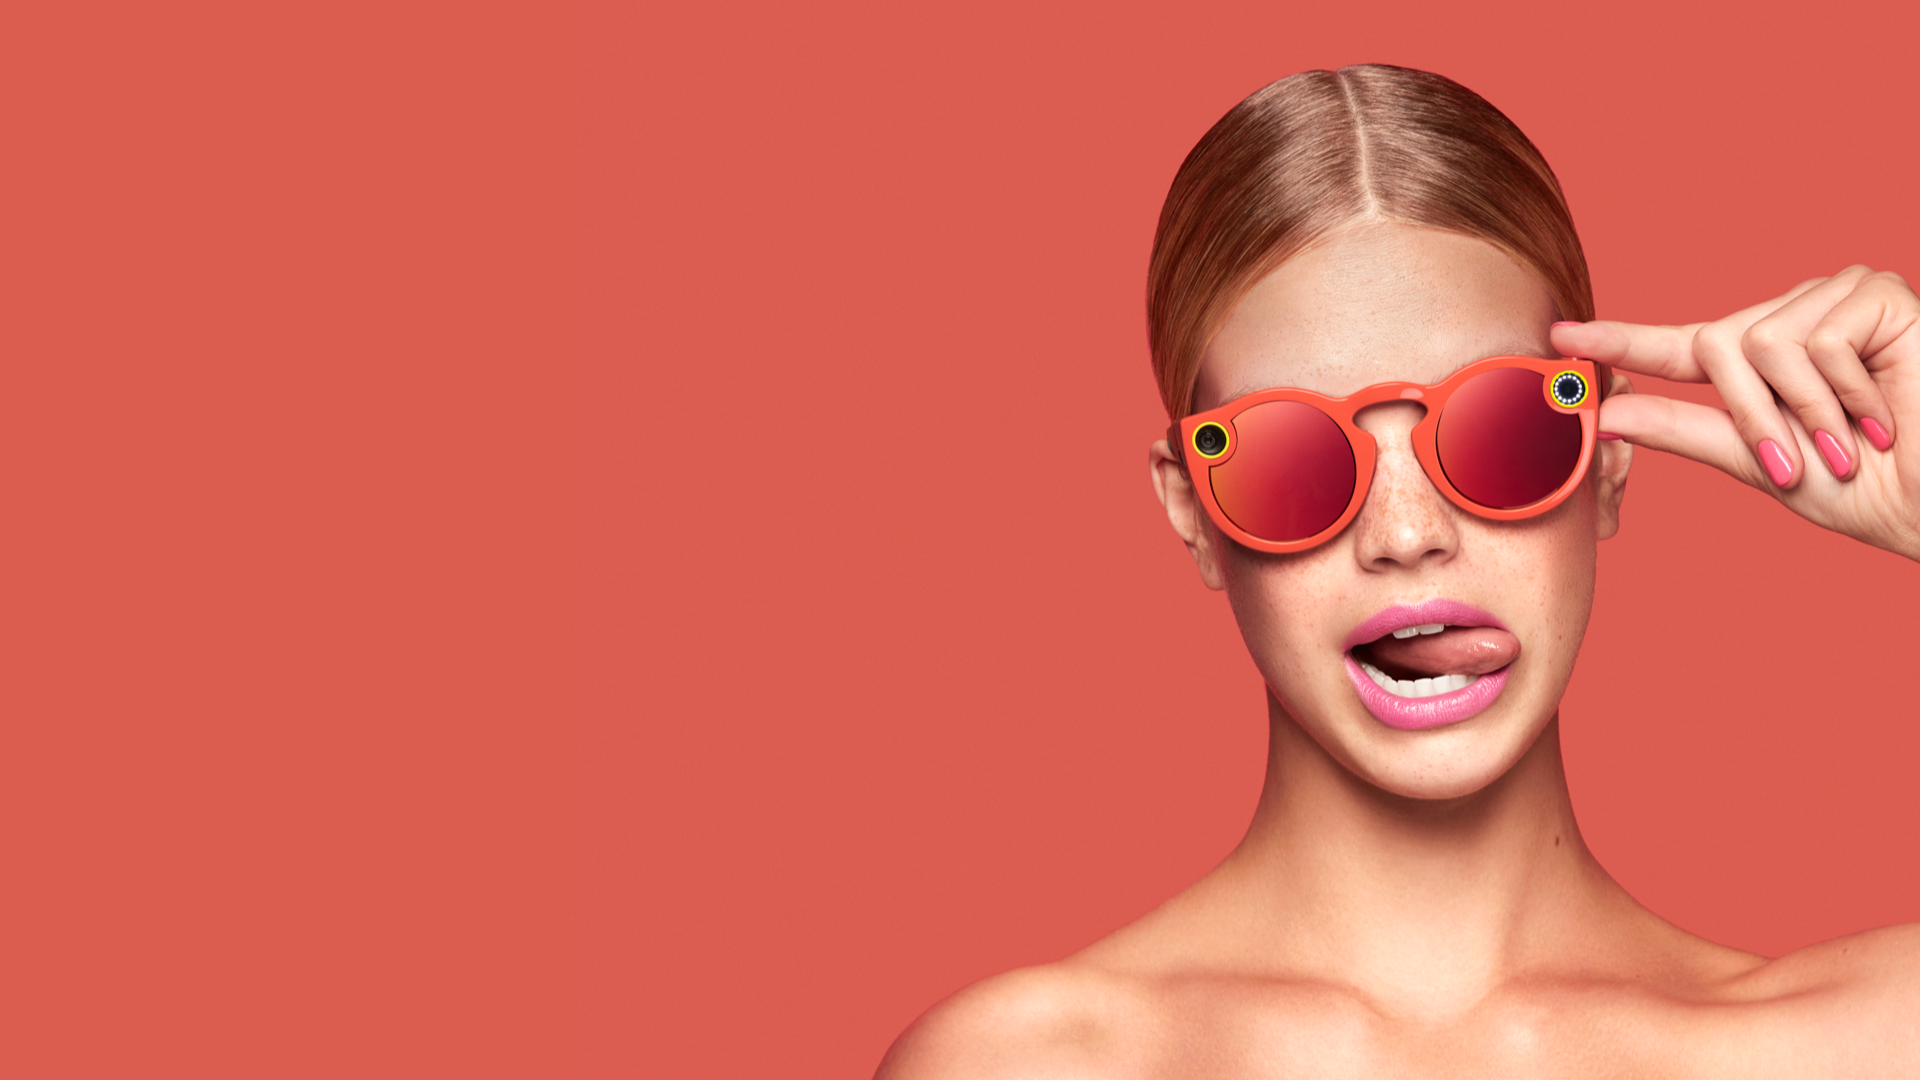 Snapchat Spectacles Now Available To Buy Outside Of The U.S. Coral on red